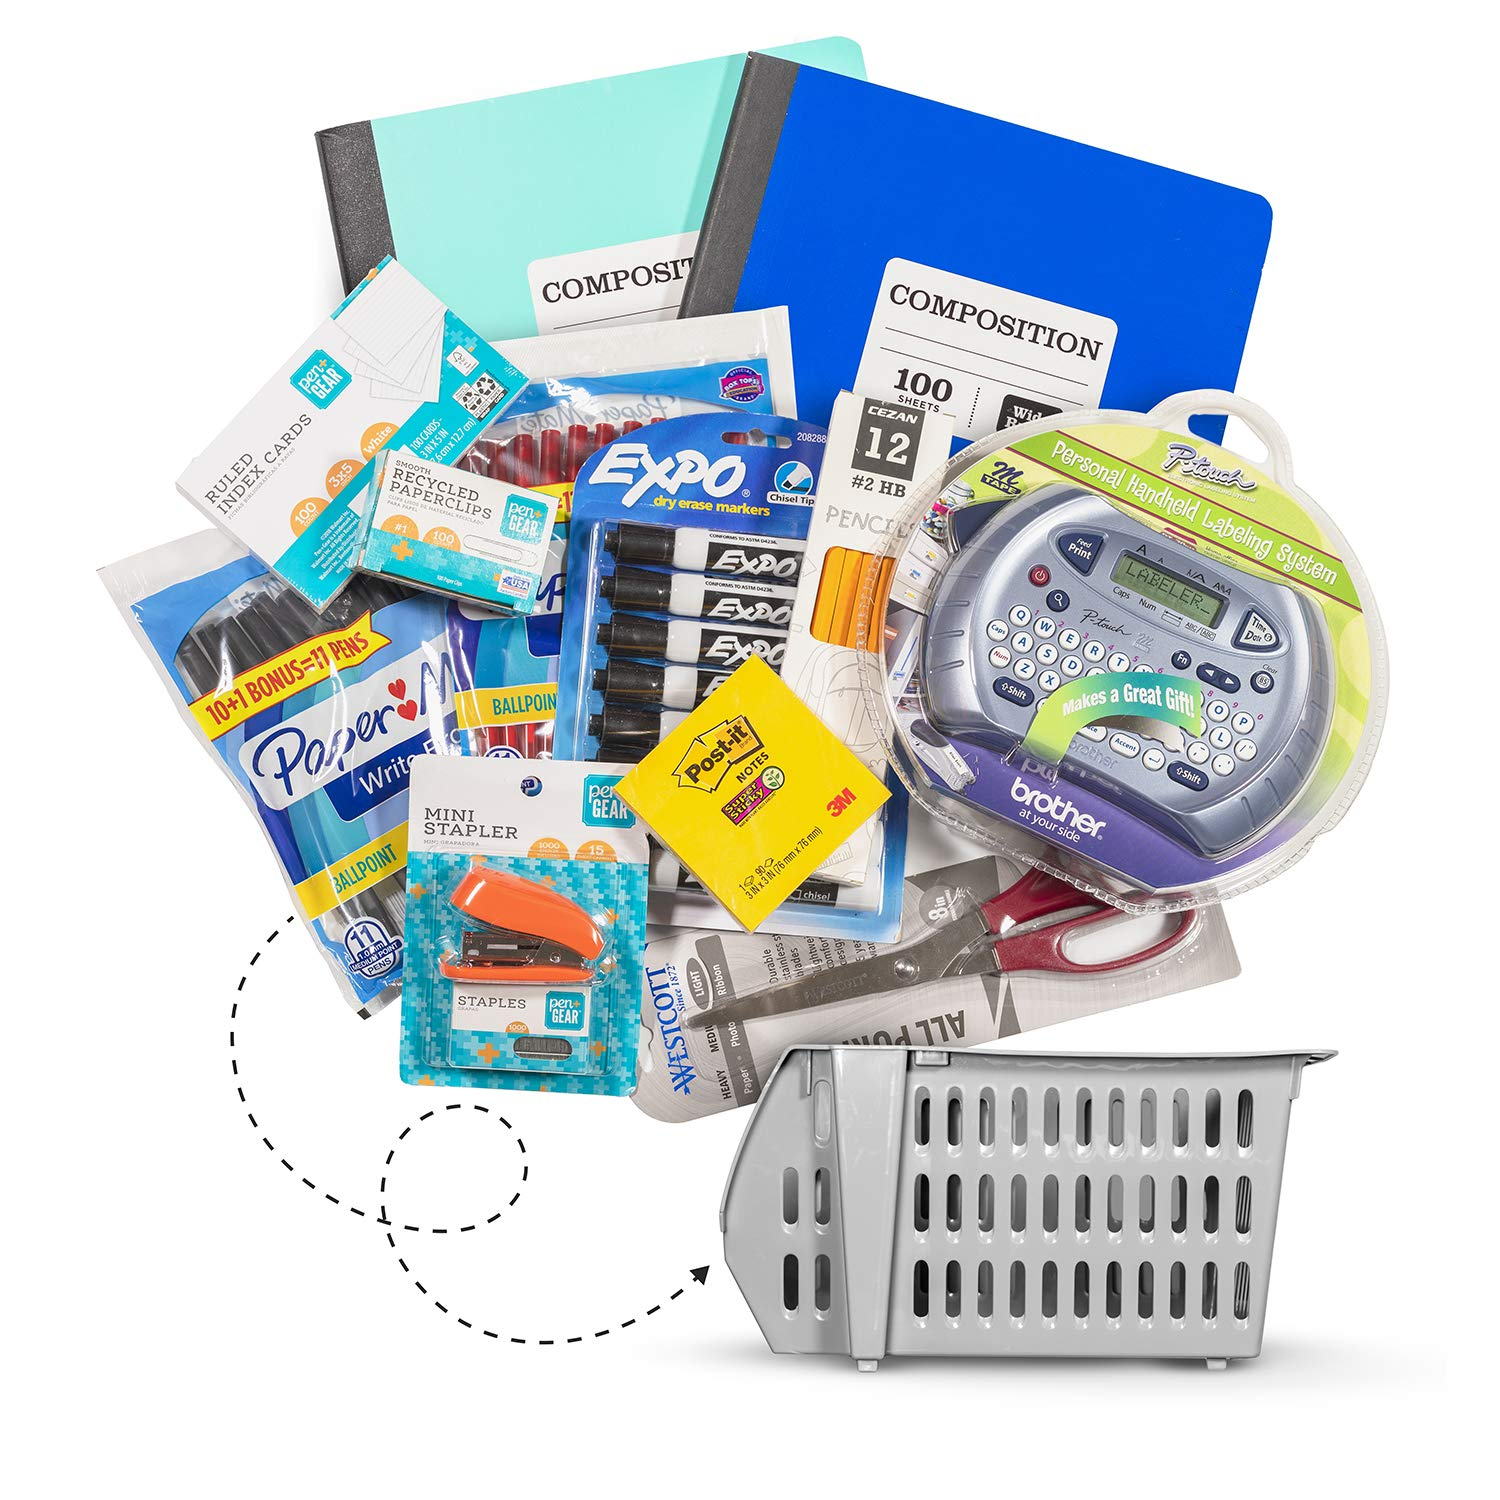 Large 13 pc Back to School Teachers Kit - Bundle Includes: Label Maker Dry Erase Markers Notebooks Scissors Stapler Index Cards Sticky Notes Black/Red Pens Paperclips Pencils and Storage Basket by Ck Ink